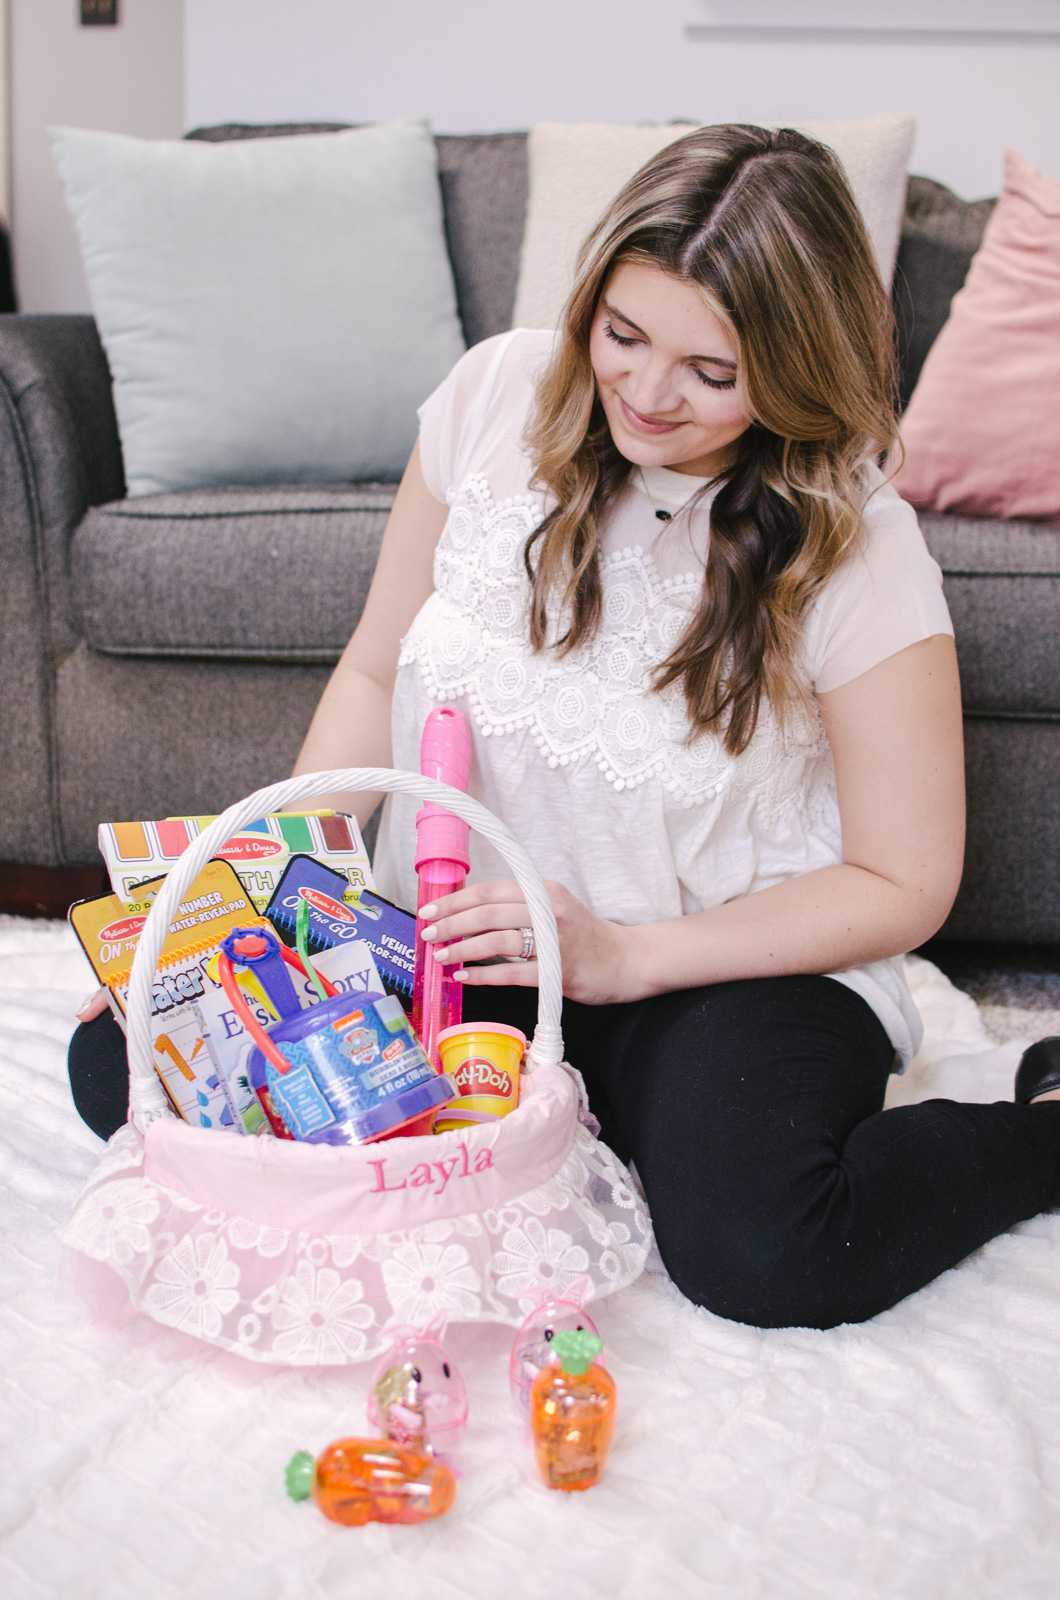 easter basket ideas toddlers - best easter basket filler ideas on amazon prime | bylaurenm.com